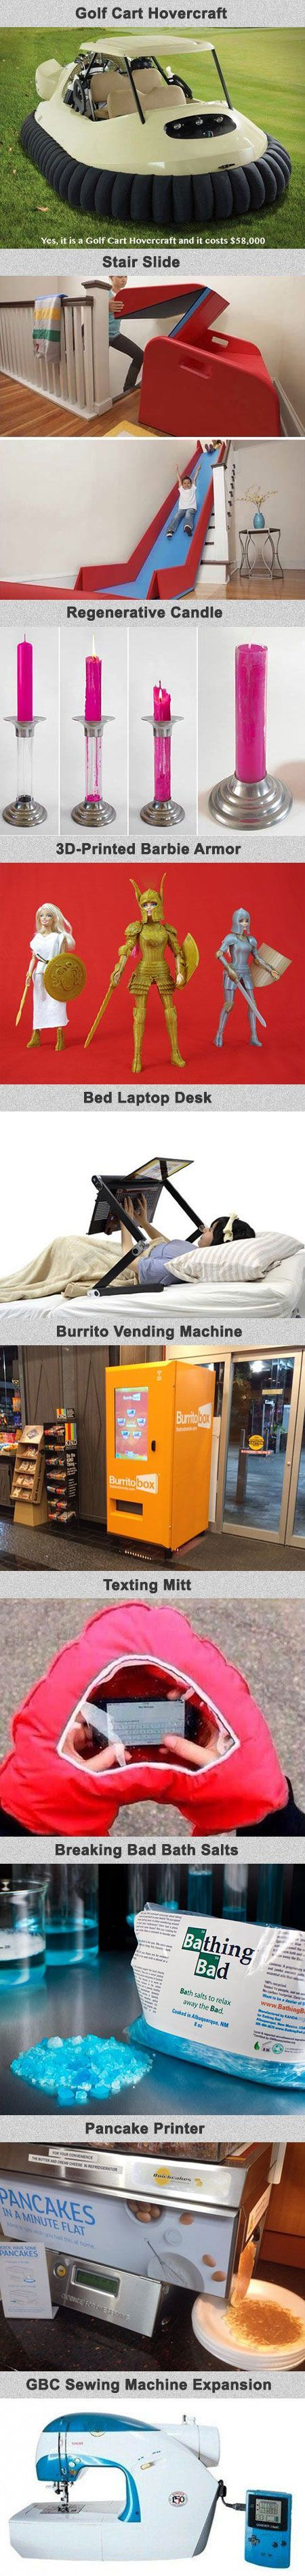 10 Bizarre Gadgets and Random Inventions You Won't Believe Exist